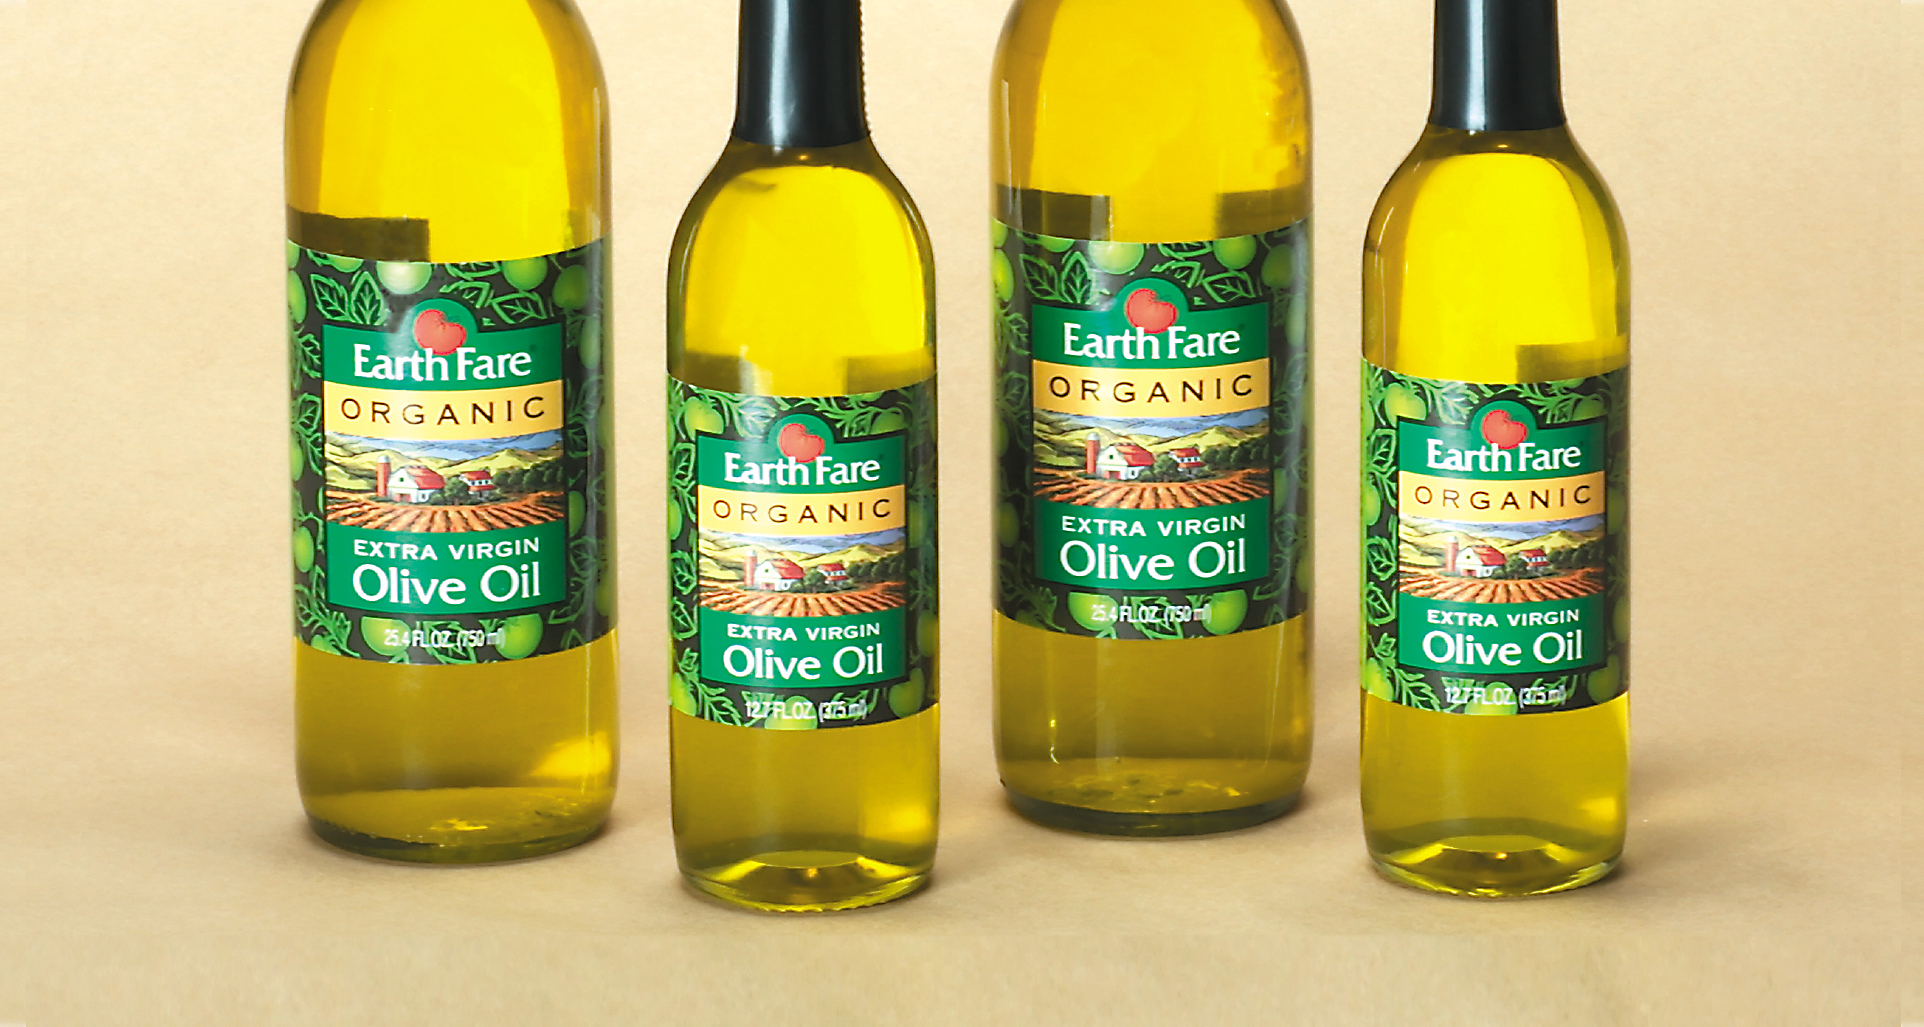 https://i2.wp.com/www.nancyframedesign.com/wp-content/uploads/2015/02/EF-olive-oil-1920-wide-slideshow-nfd.jpg